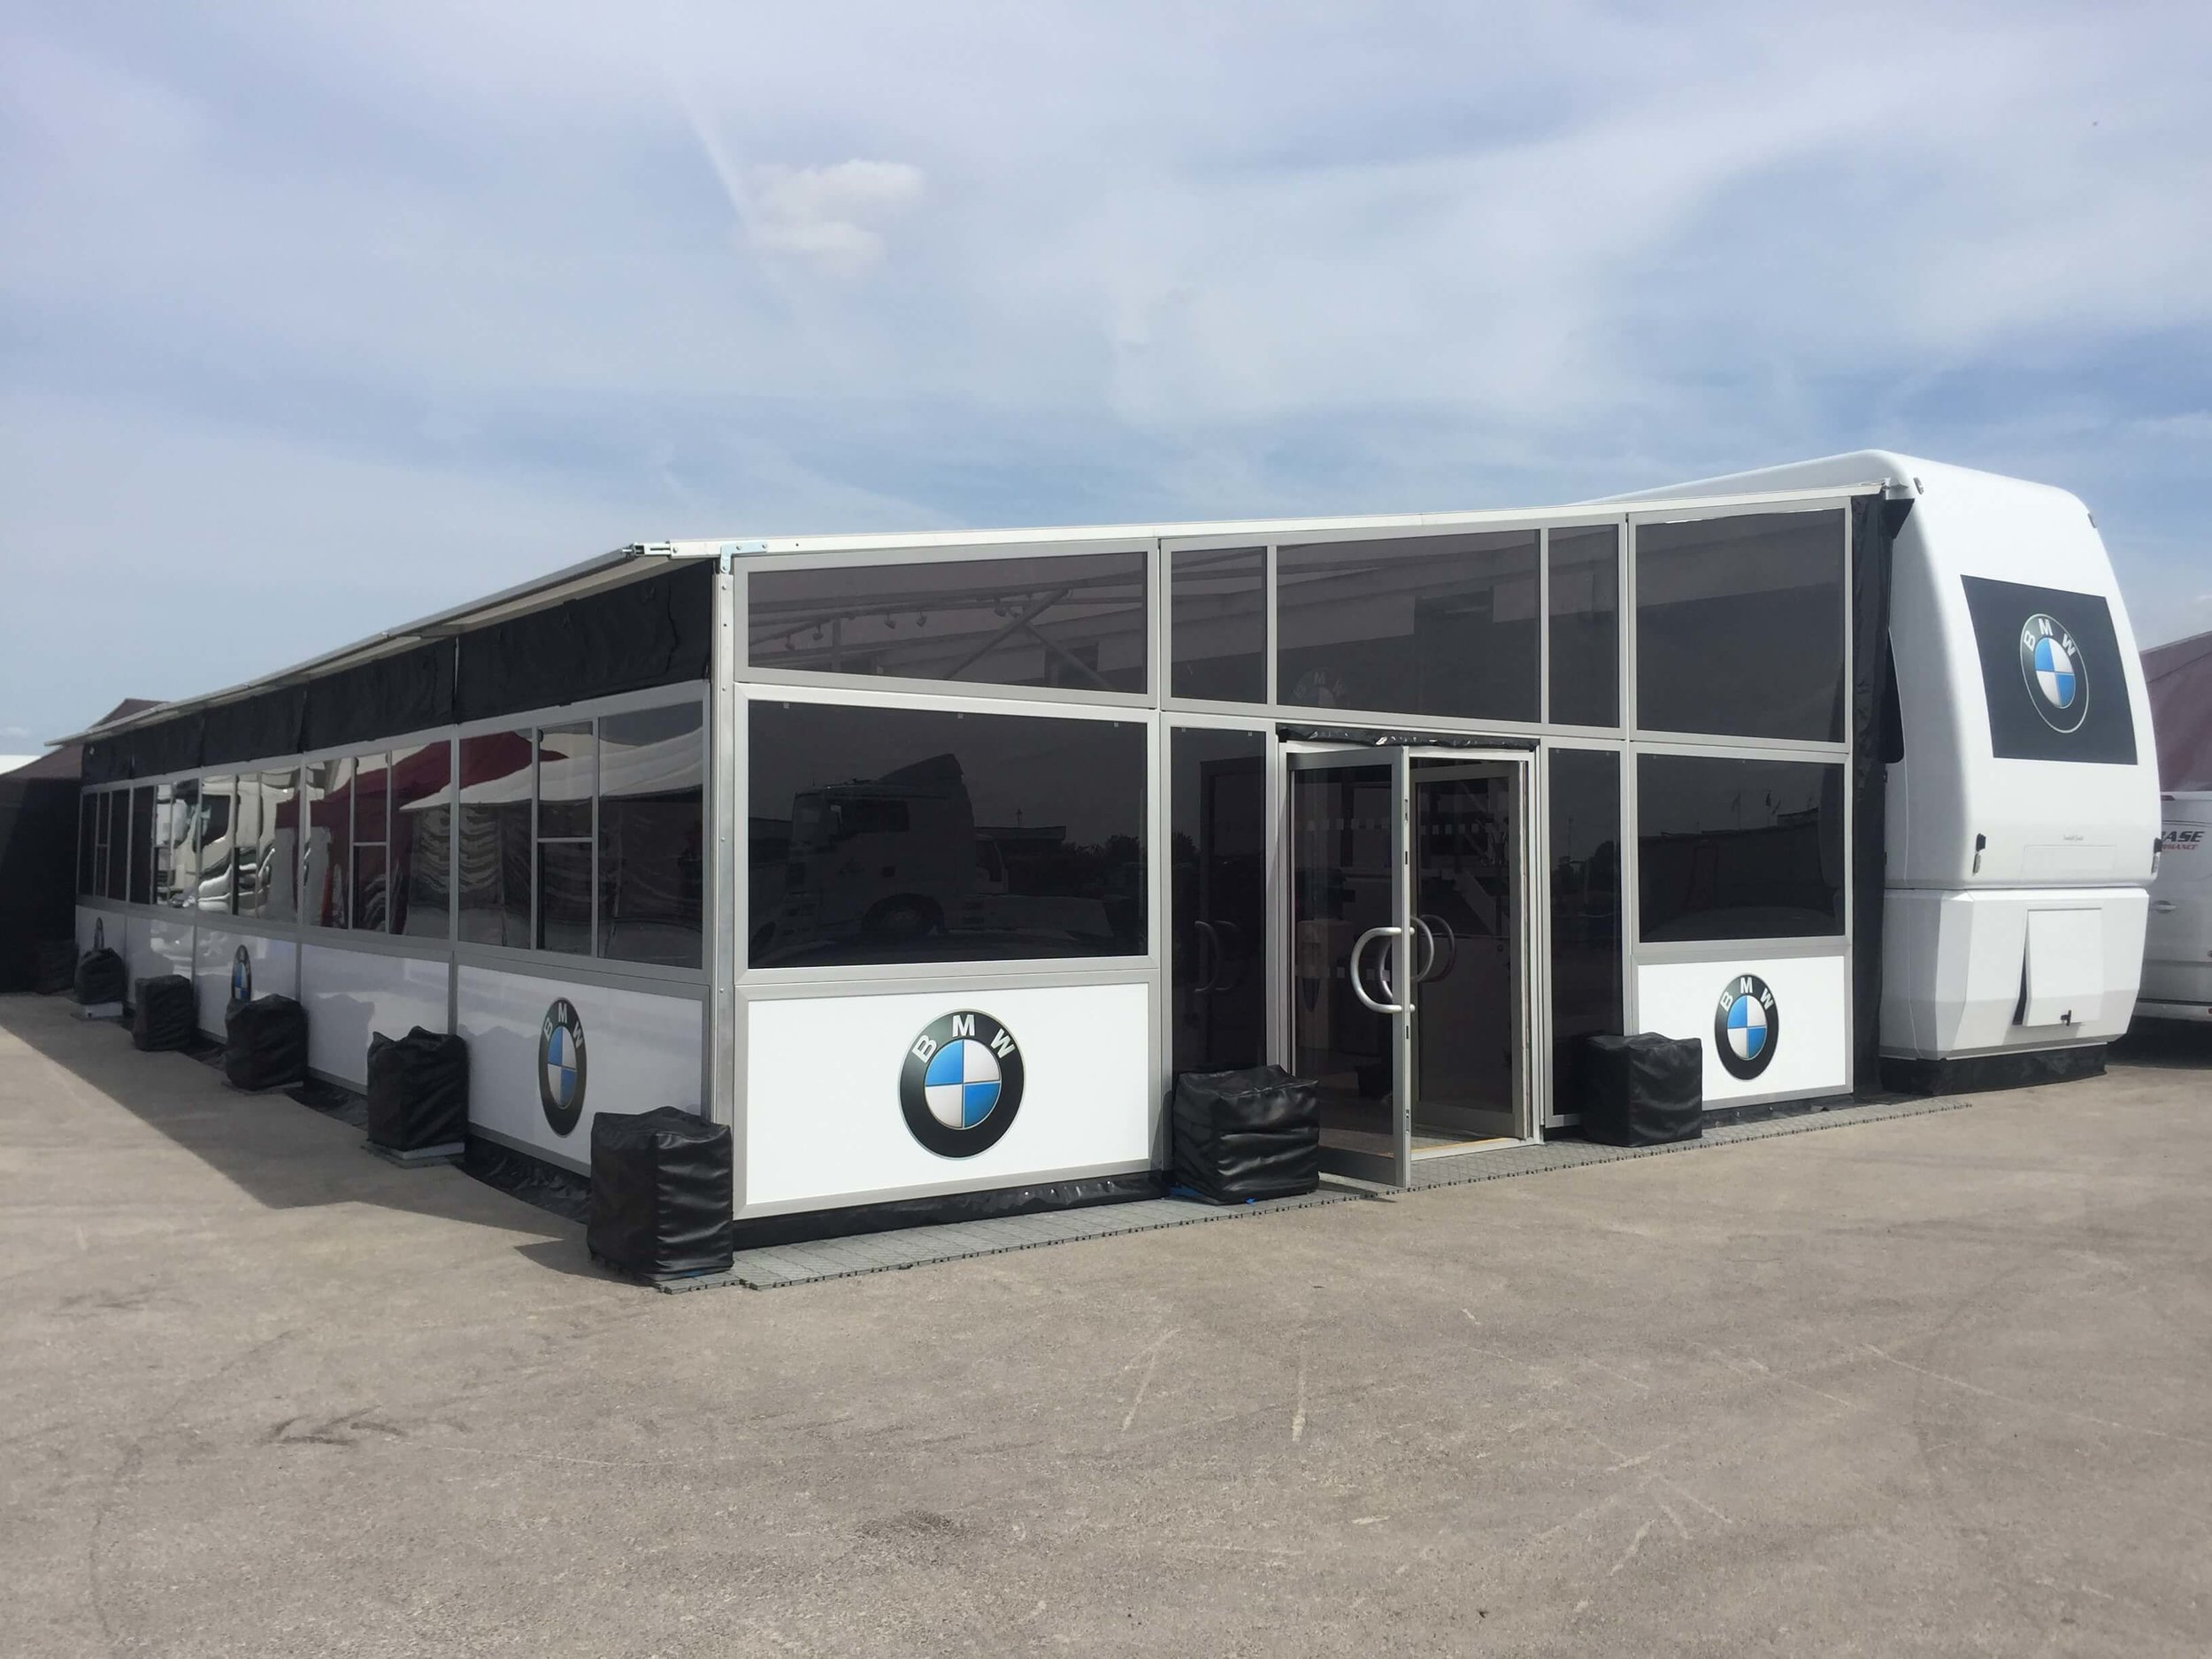 BMW Event Signs